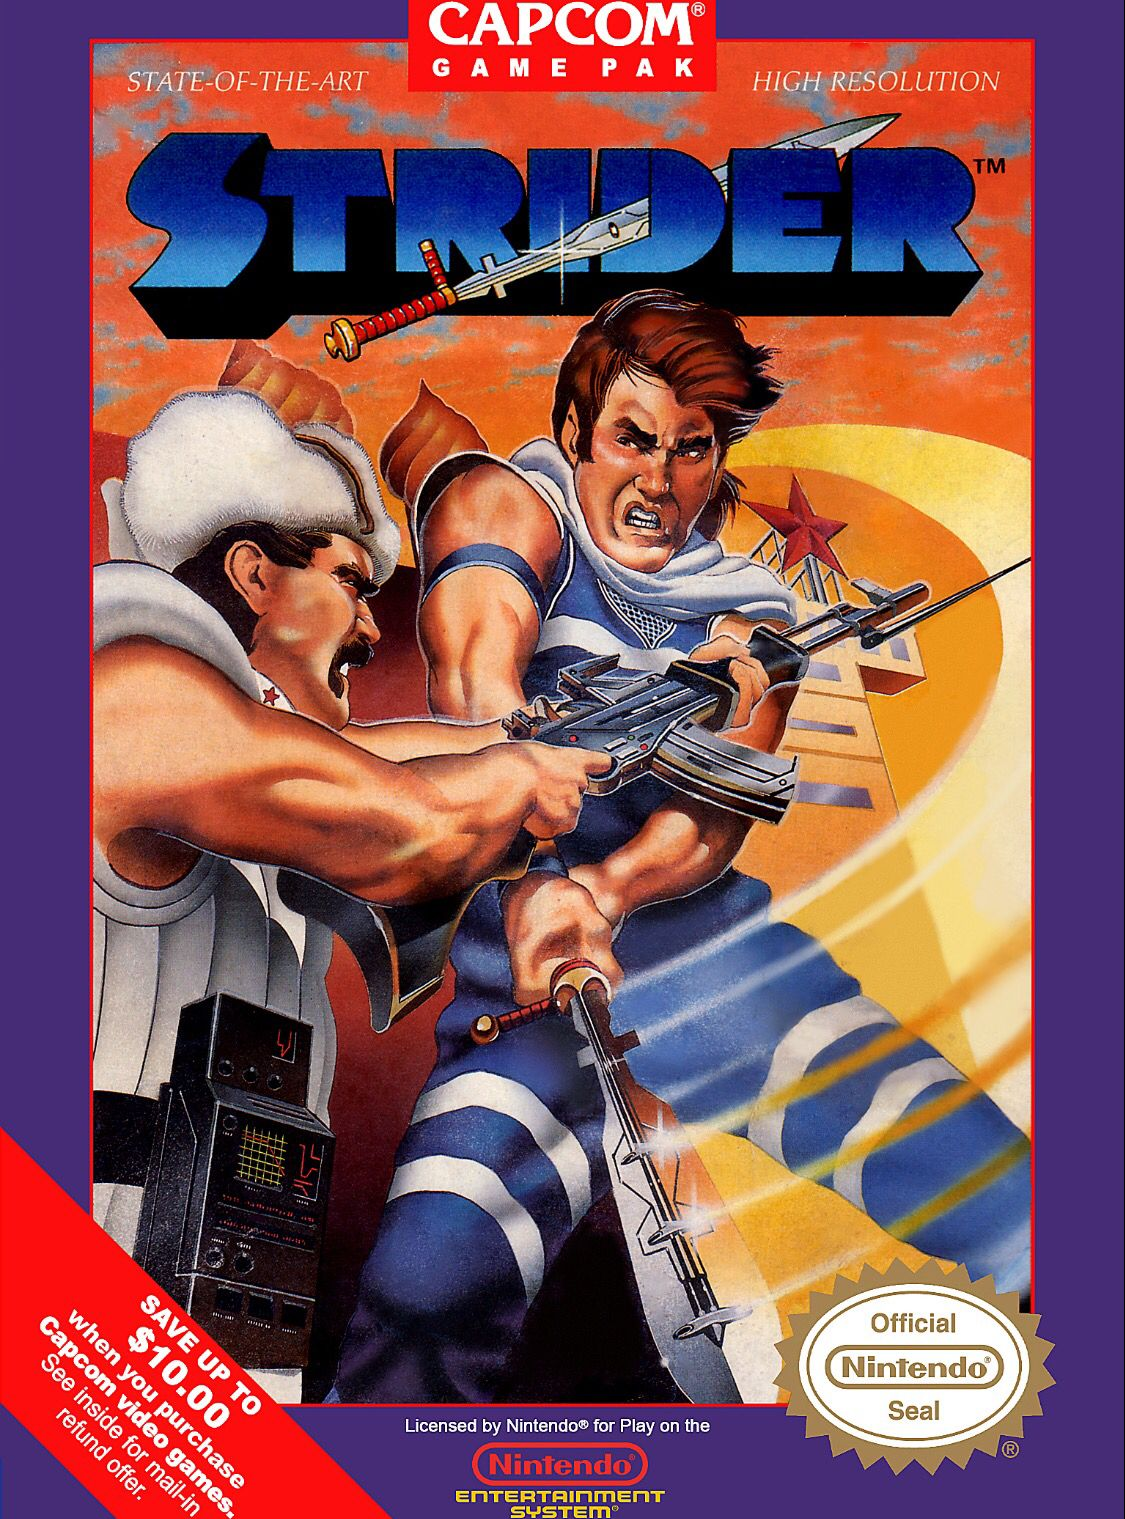 Retro Bionic Commando Game Poster////NES Game Poster////Video Game Poster////Vintage G